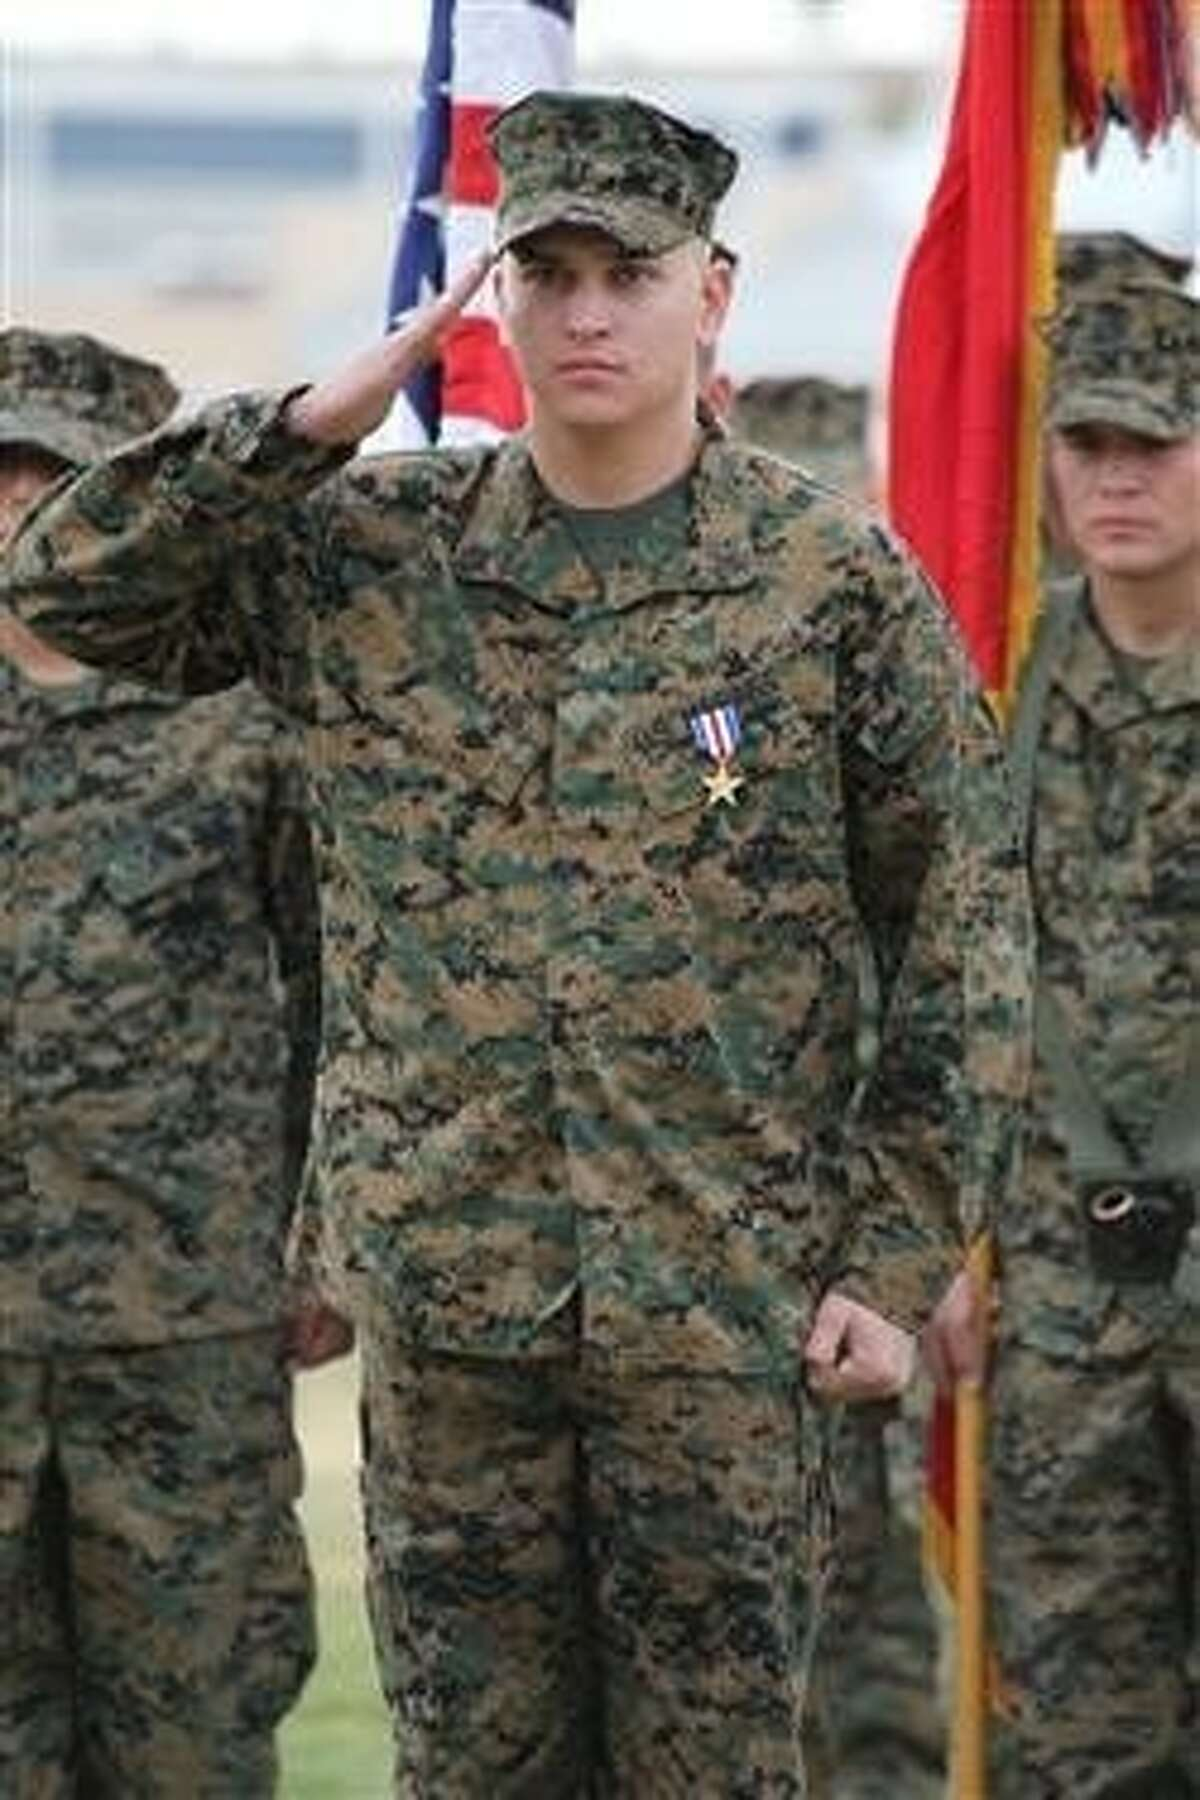 Marine Sgt. William W. Rollins was recently awarded a Silver Star for his valorous conduct in Afghanistan. He is credited with helping to save the lives of the members of his squad during an ambush with Taliban soldiers.